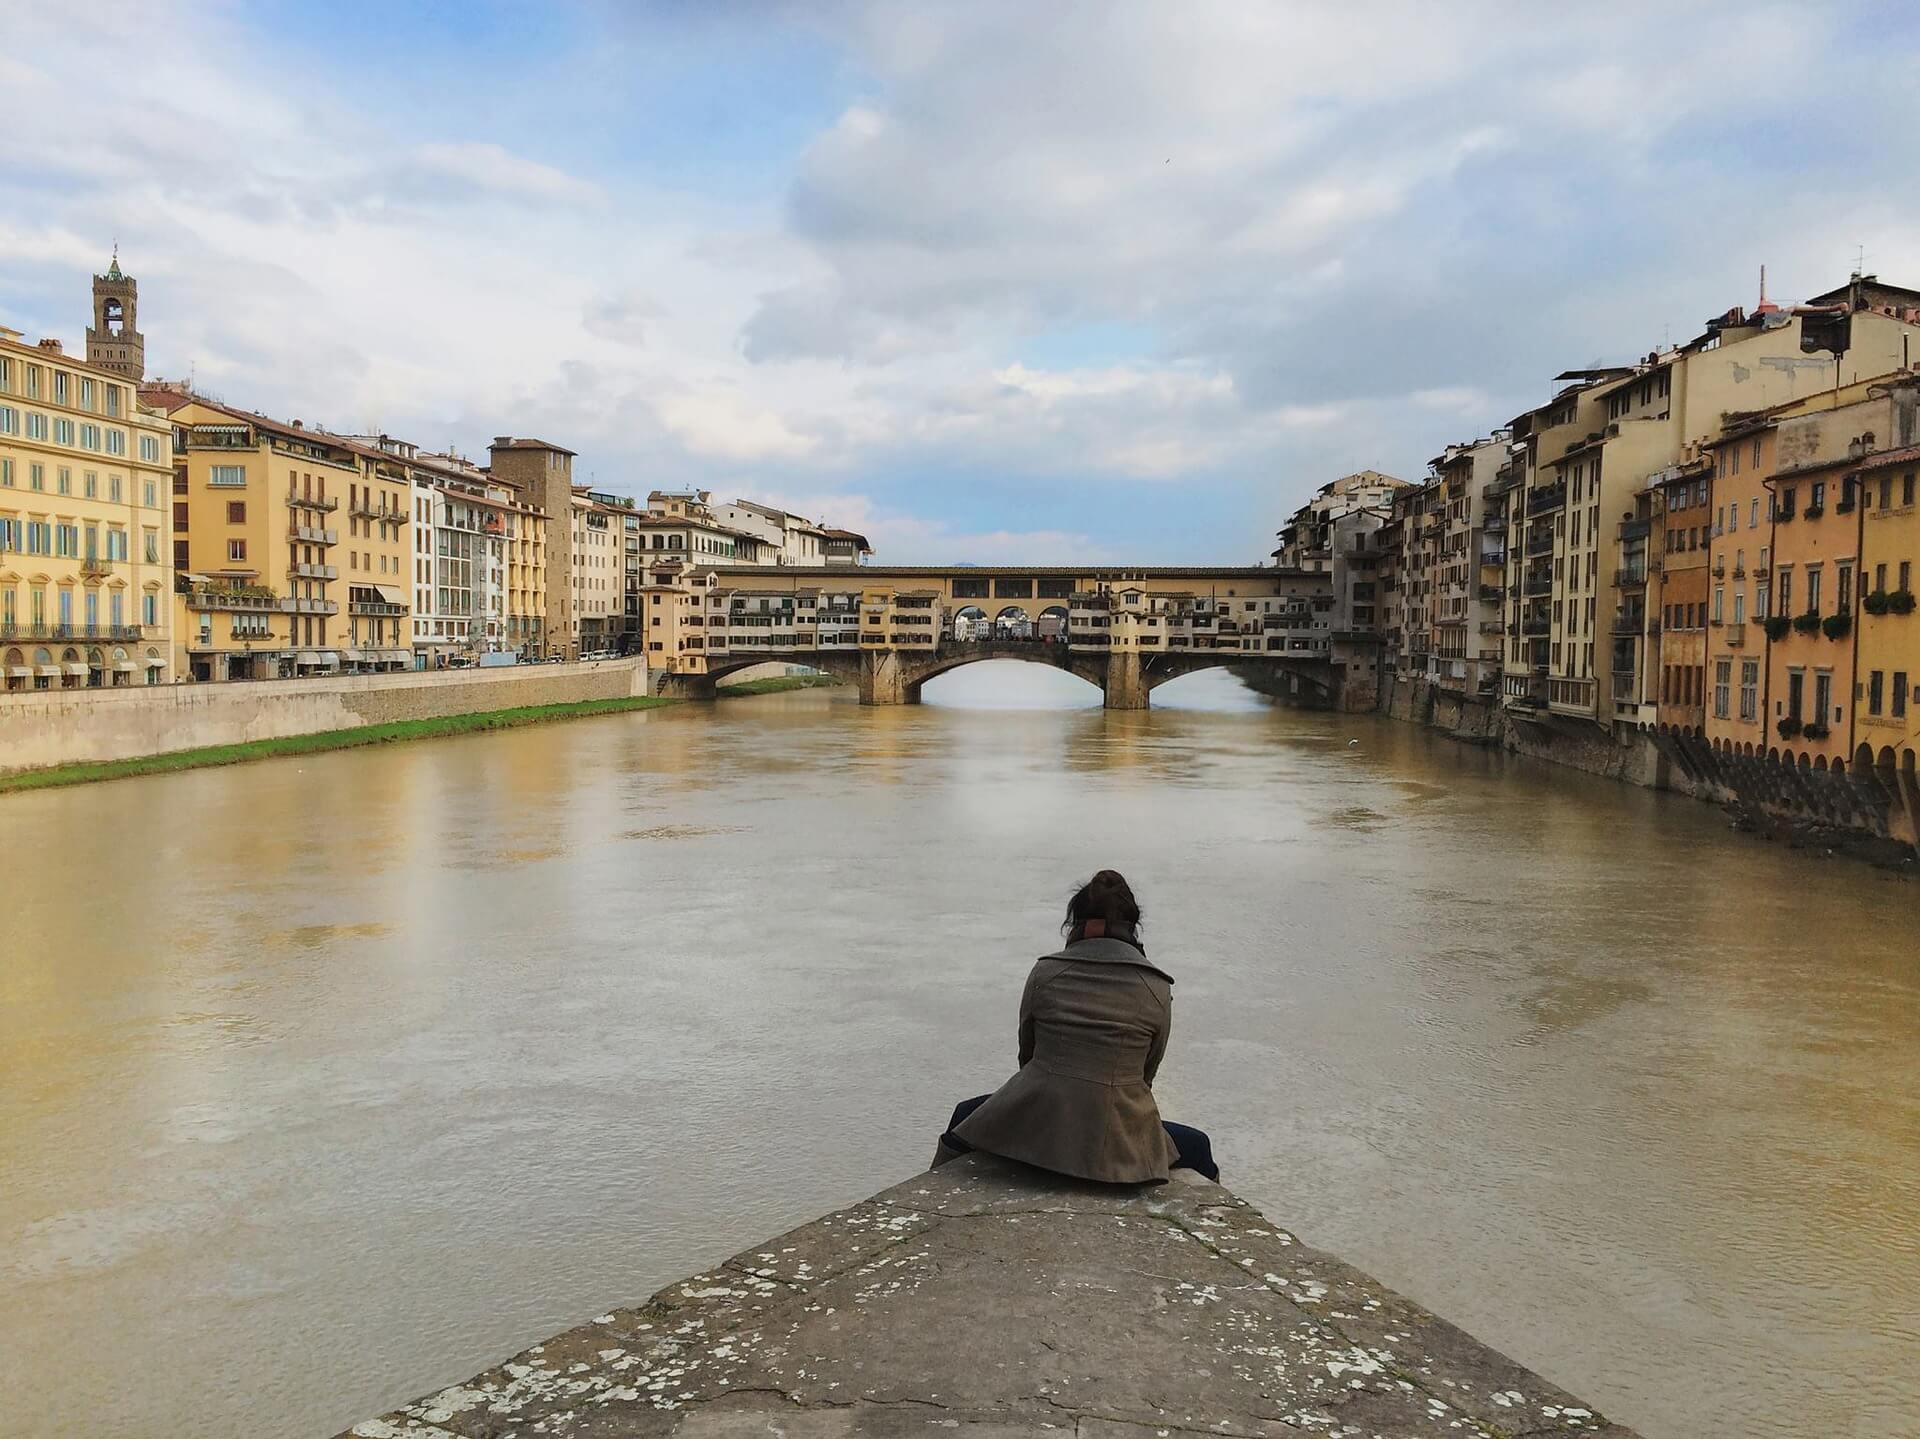 Person sitting at the end of a path, in a canal, looking at buildings